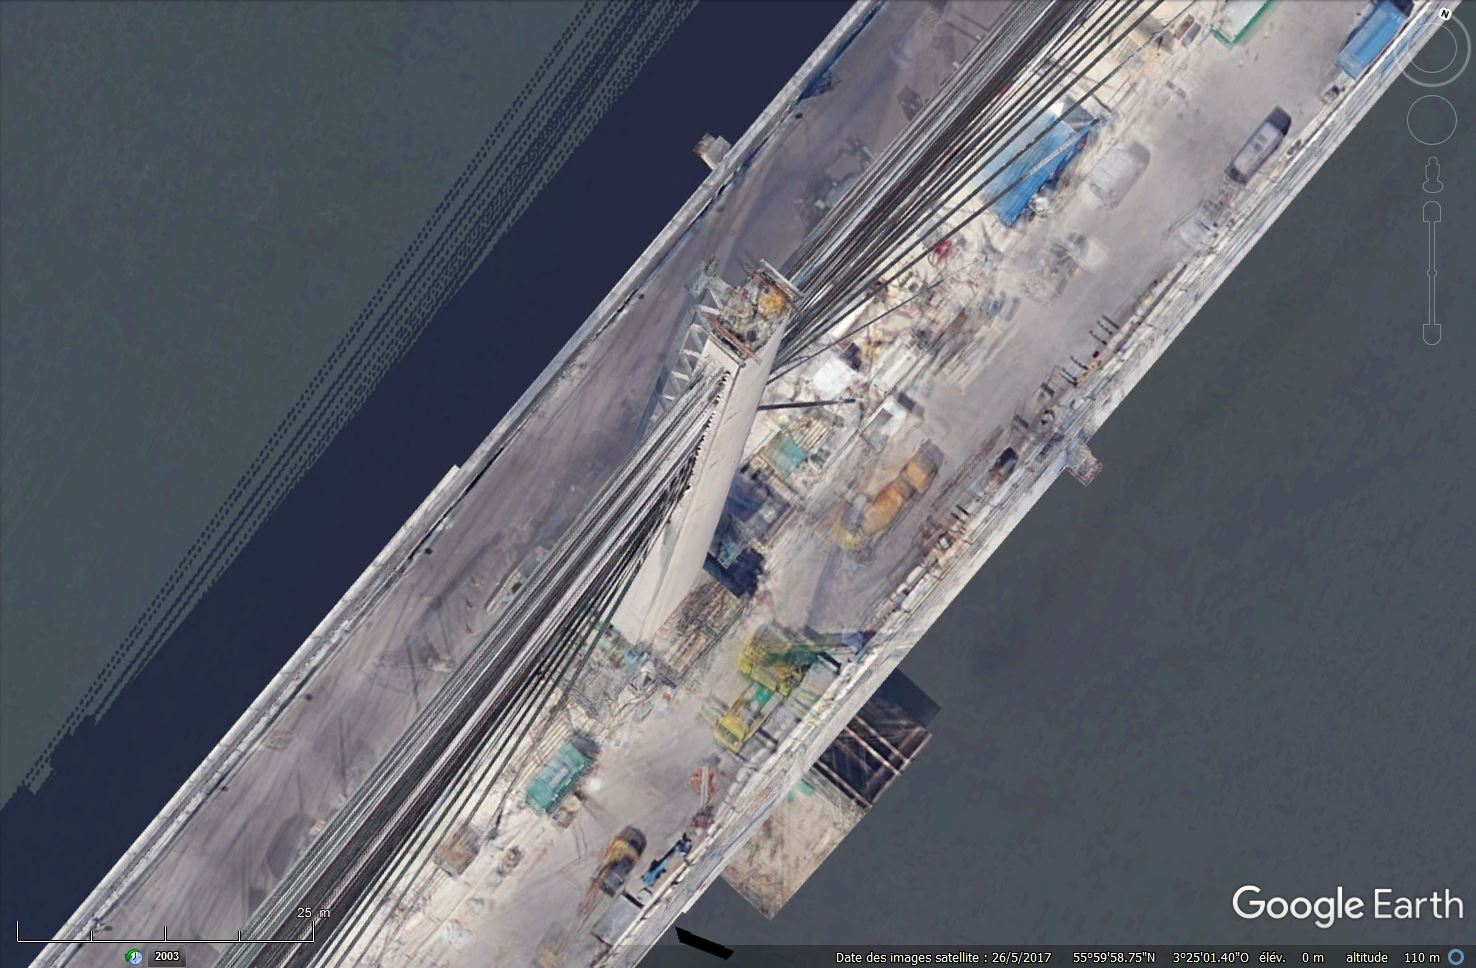 [Désormais visible sur Google-Earth] - Le 3ème pont de Queensferry en Ecosse (Queensferry Crossing)) Tsge_106